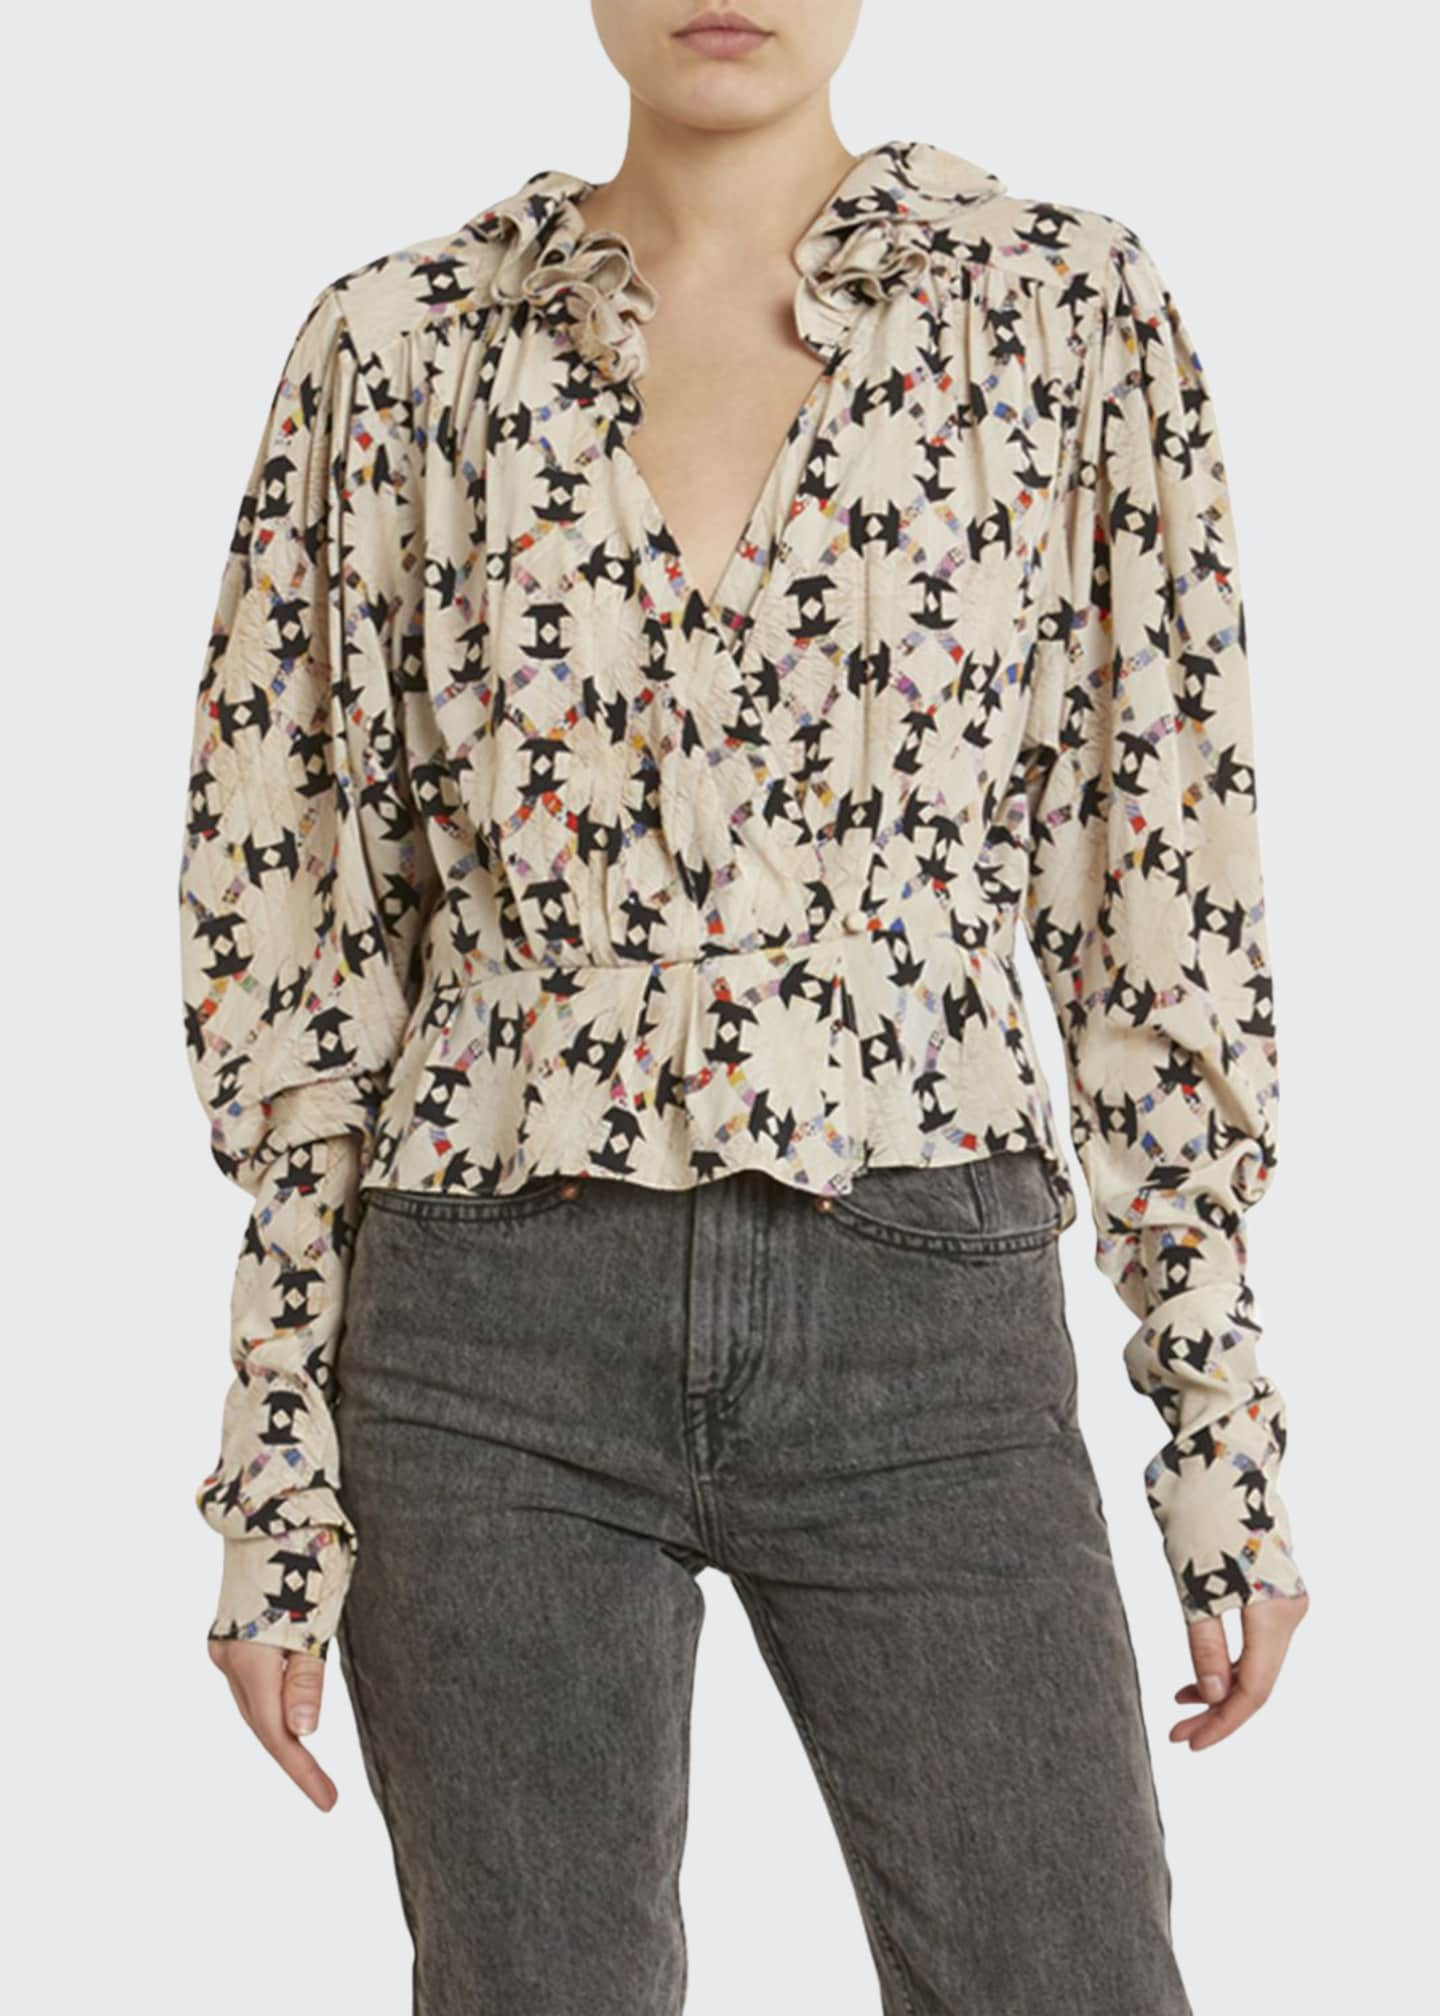 Isabel Marant Floral-Print Stretch-Silk Top